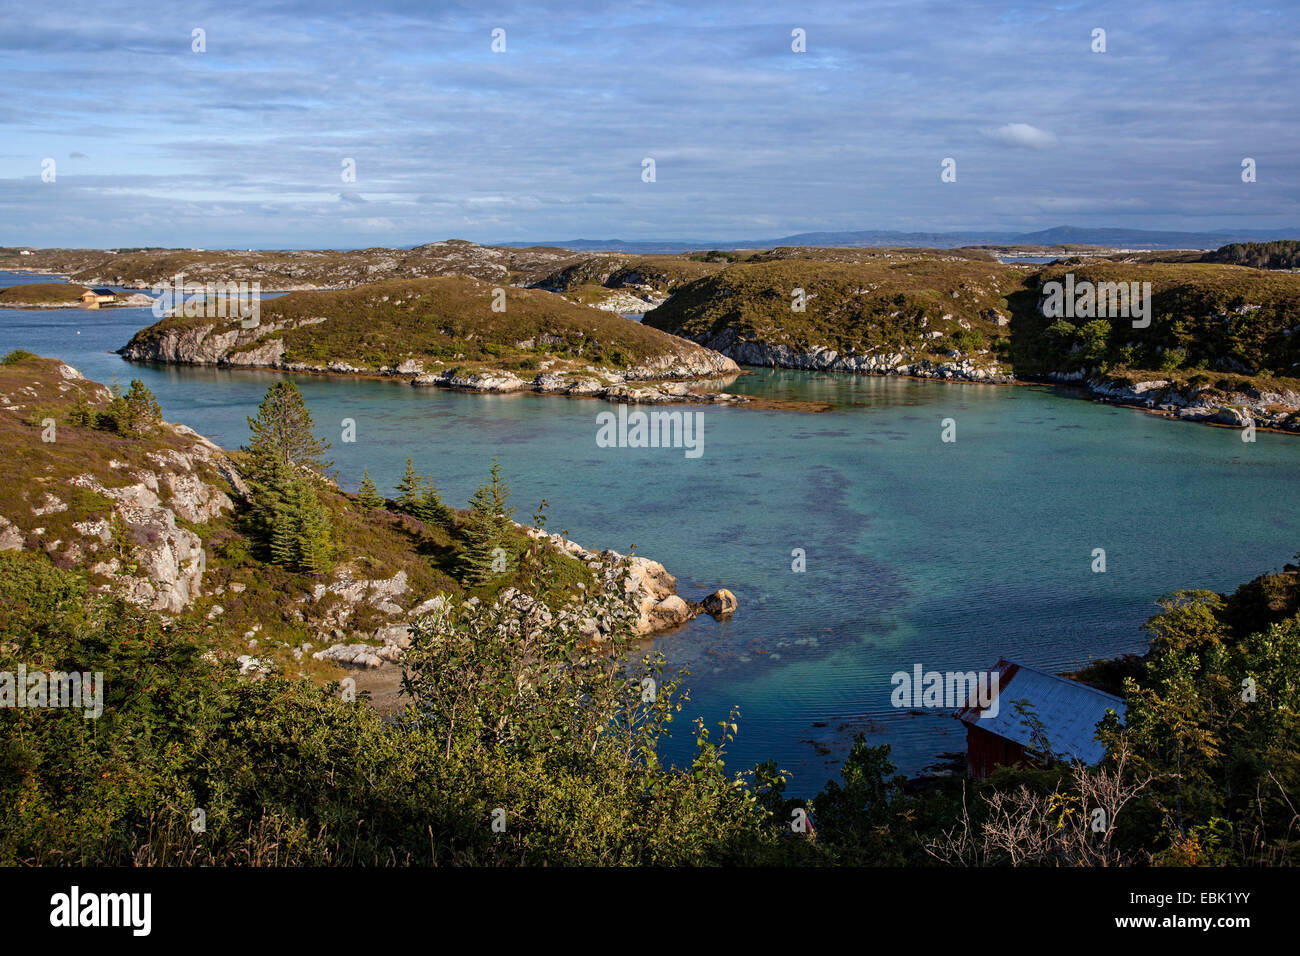 fjord landscape, Norway, Hitra - Stock Image